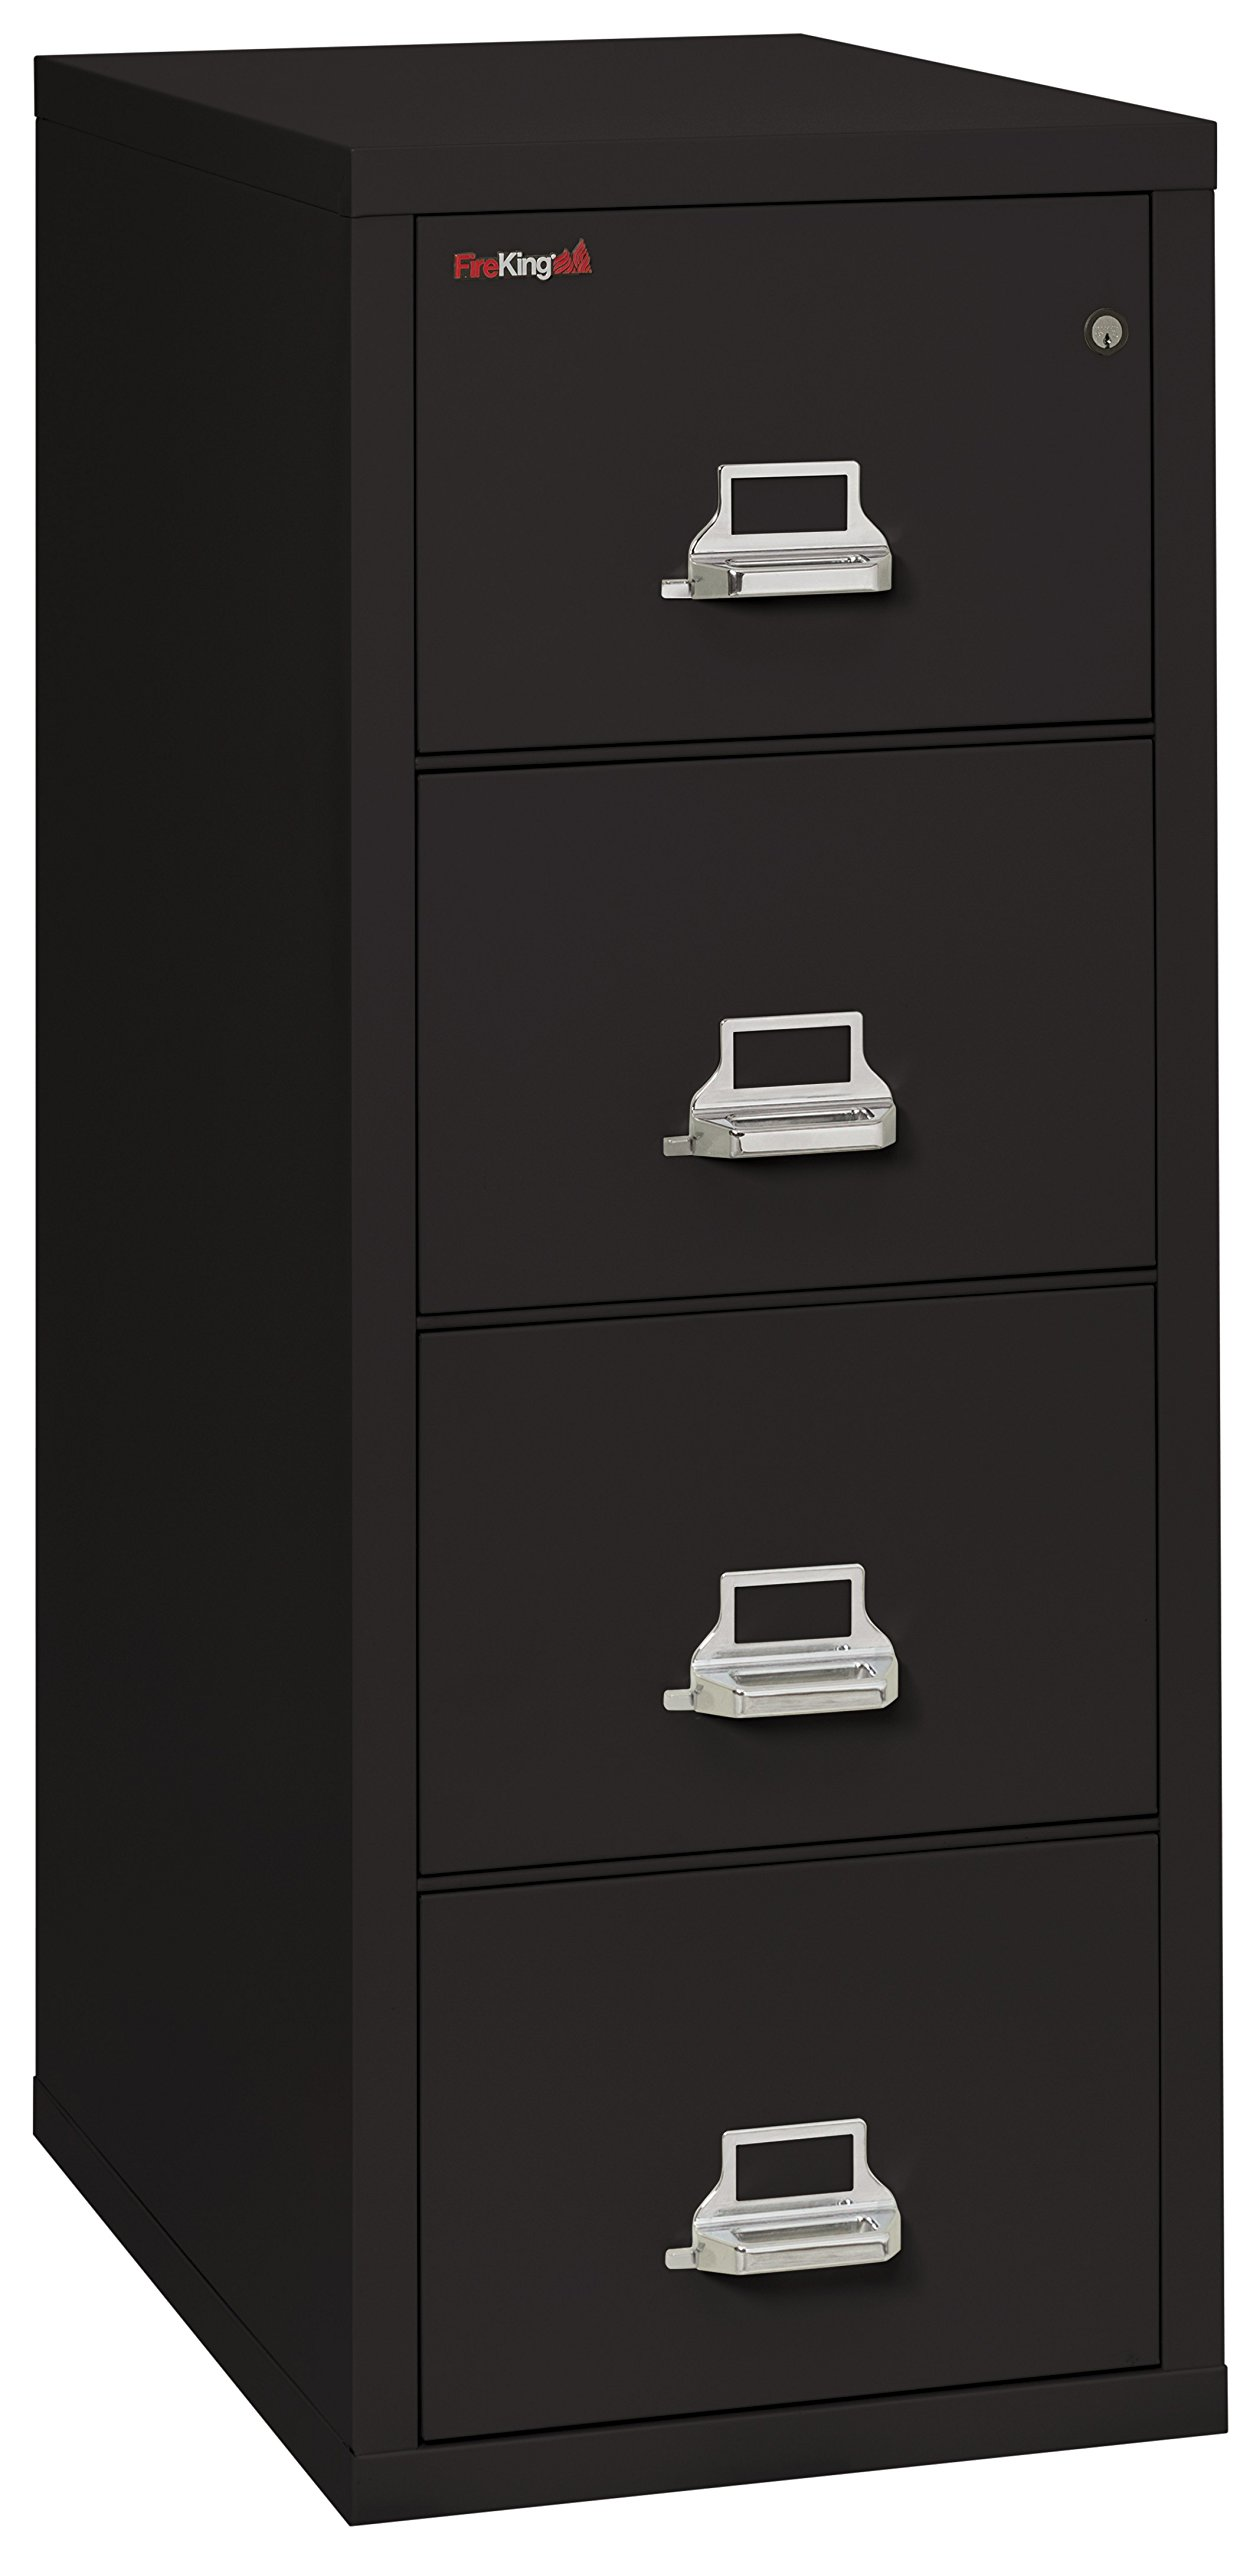 Black 1 hour Fire Impact rated Vertical cabinet 4 Drawer Legal 31 1/2 depth Made in USA